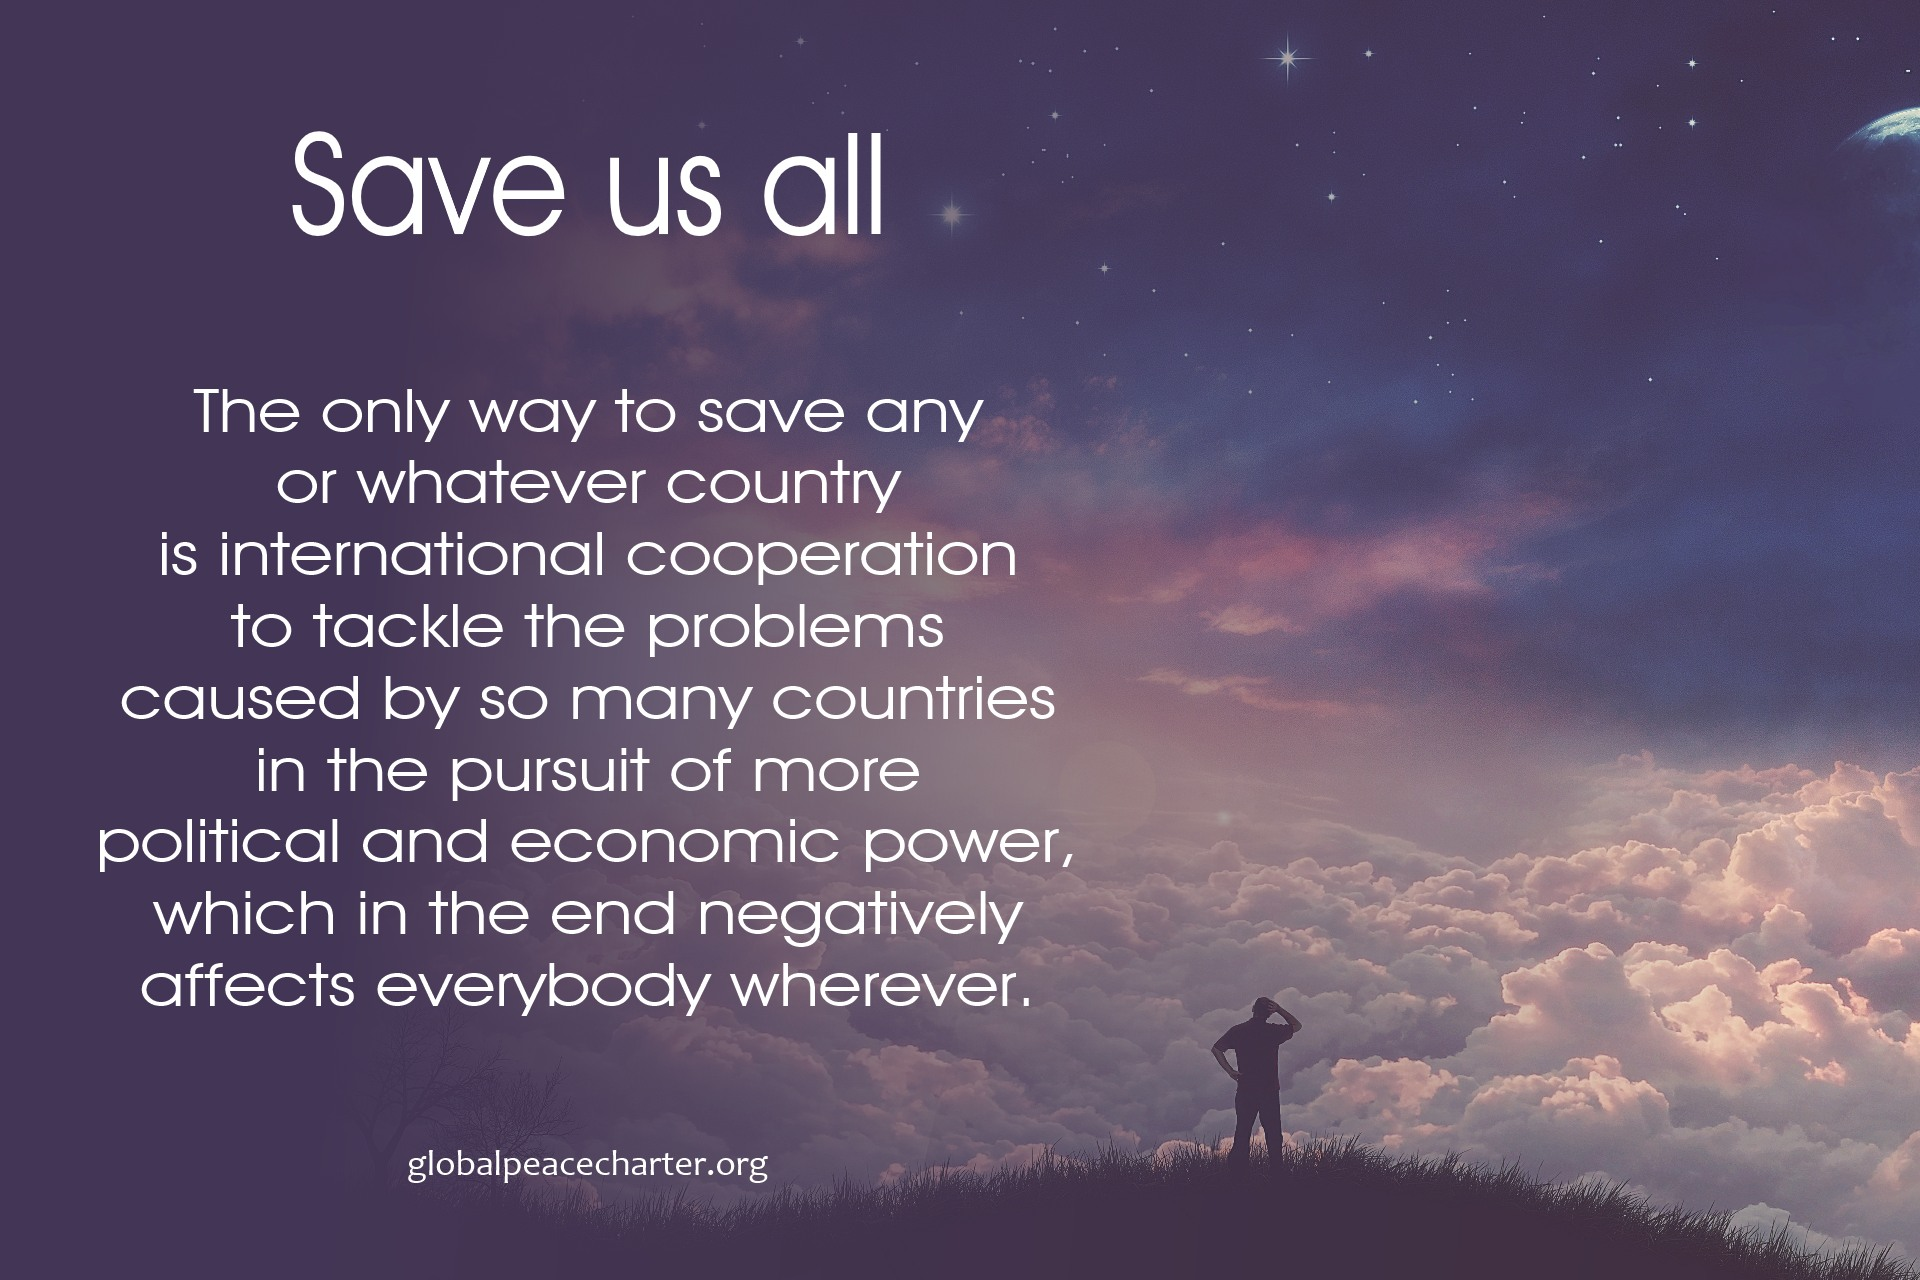 Save us all